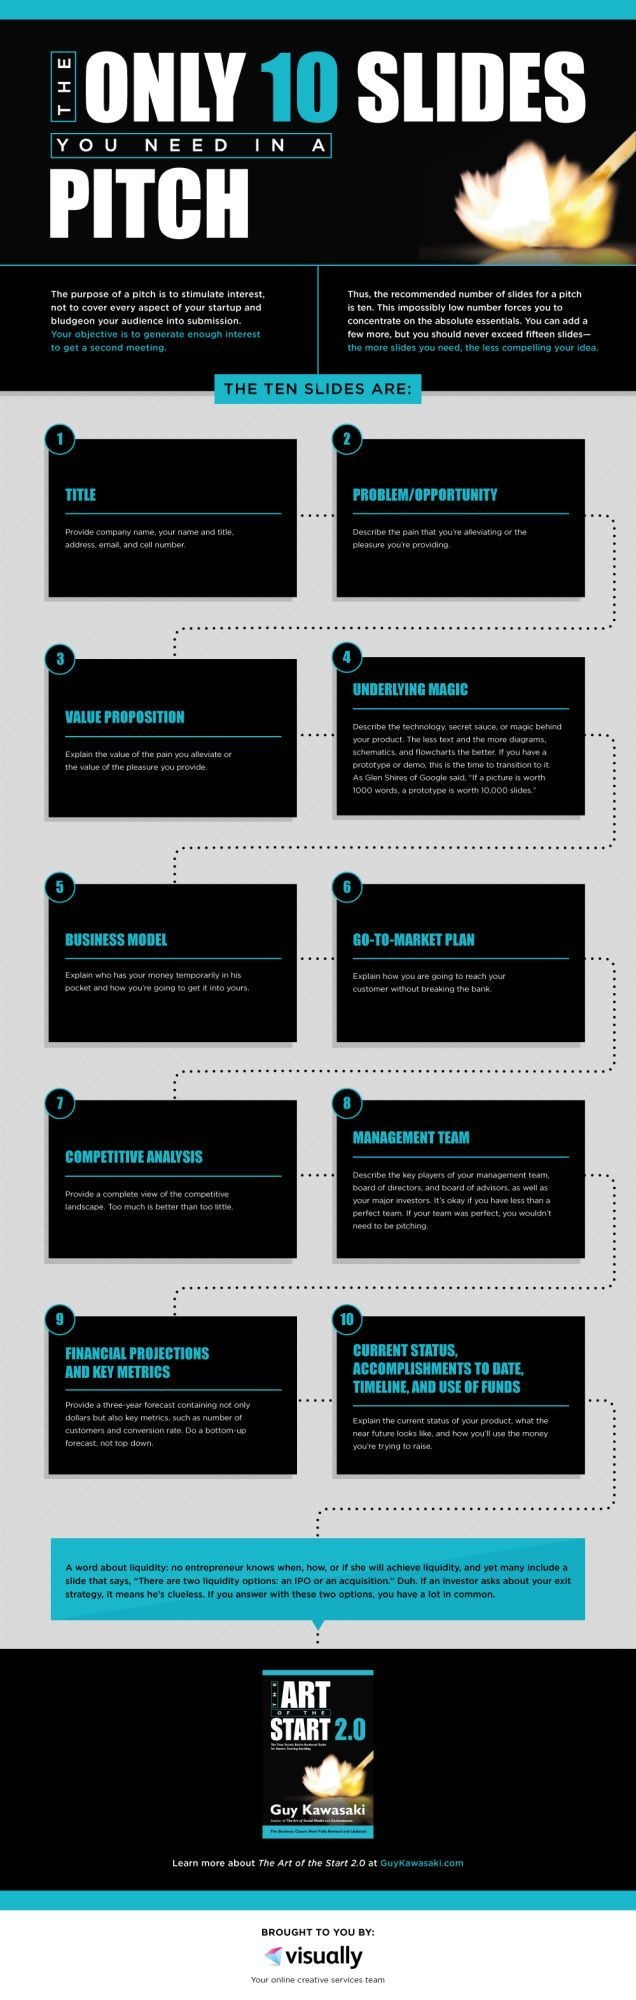 The 10 Slides You Need To Pitch Your Business Idea Lifehacker Business Pitch Business Infographic Guy Kawasaki